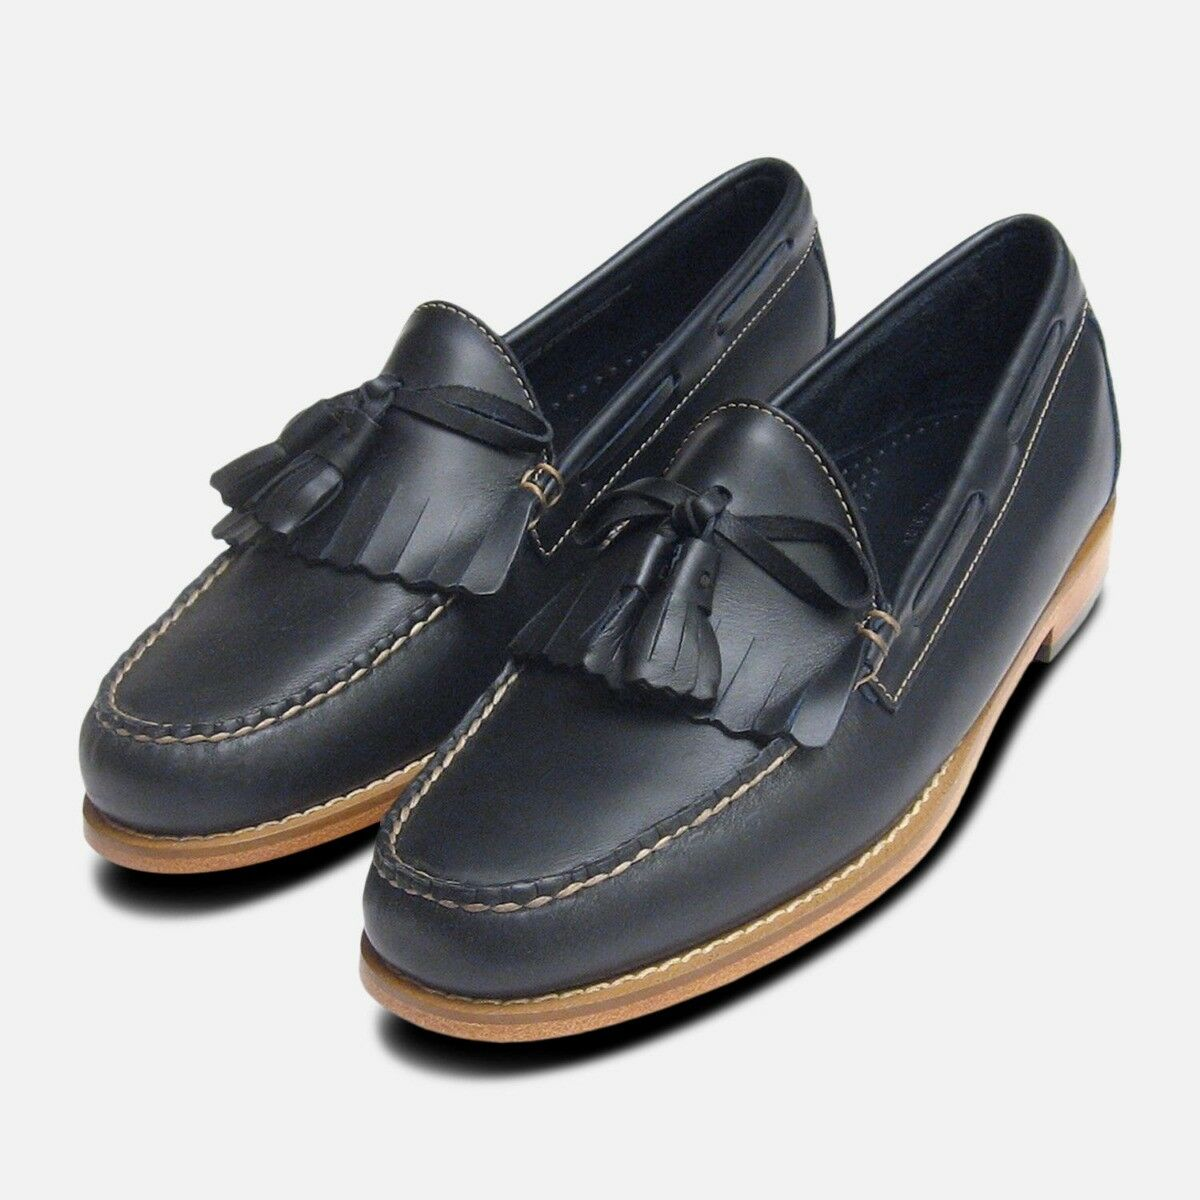 Navy Blau Waxy Leather Mens Fringe & Tassel Loafers by Bass Weejuns